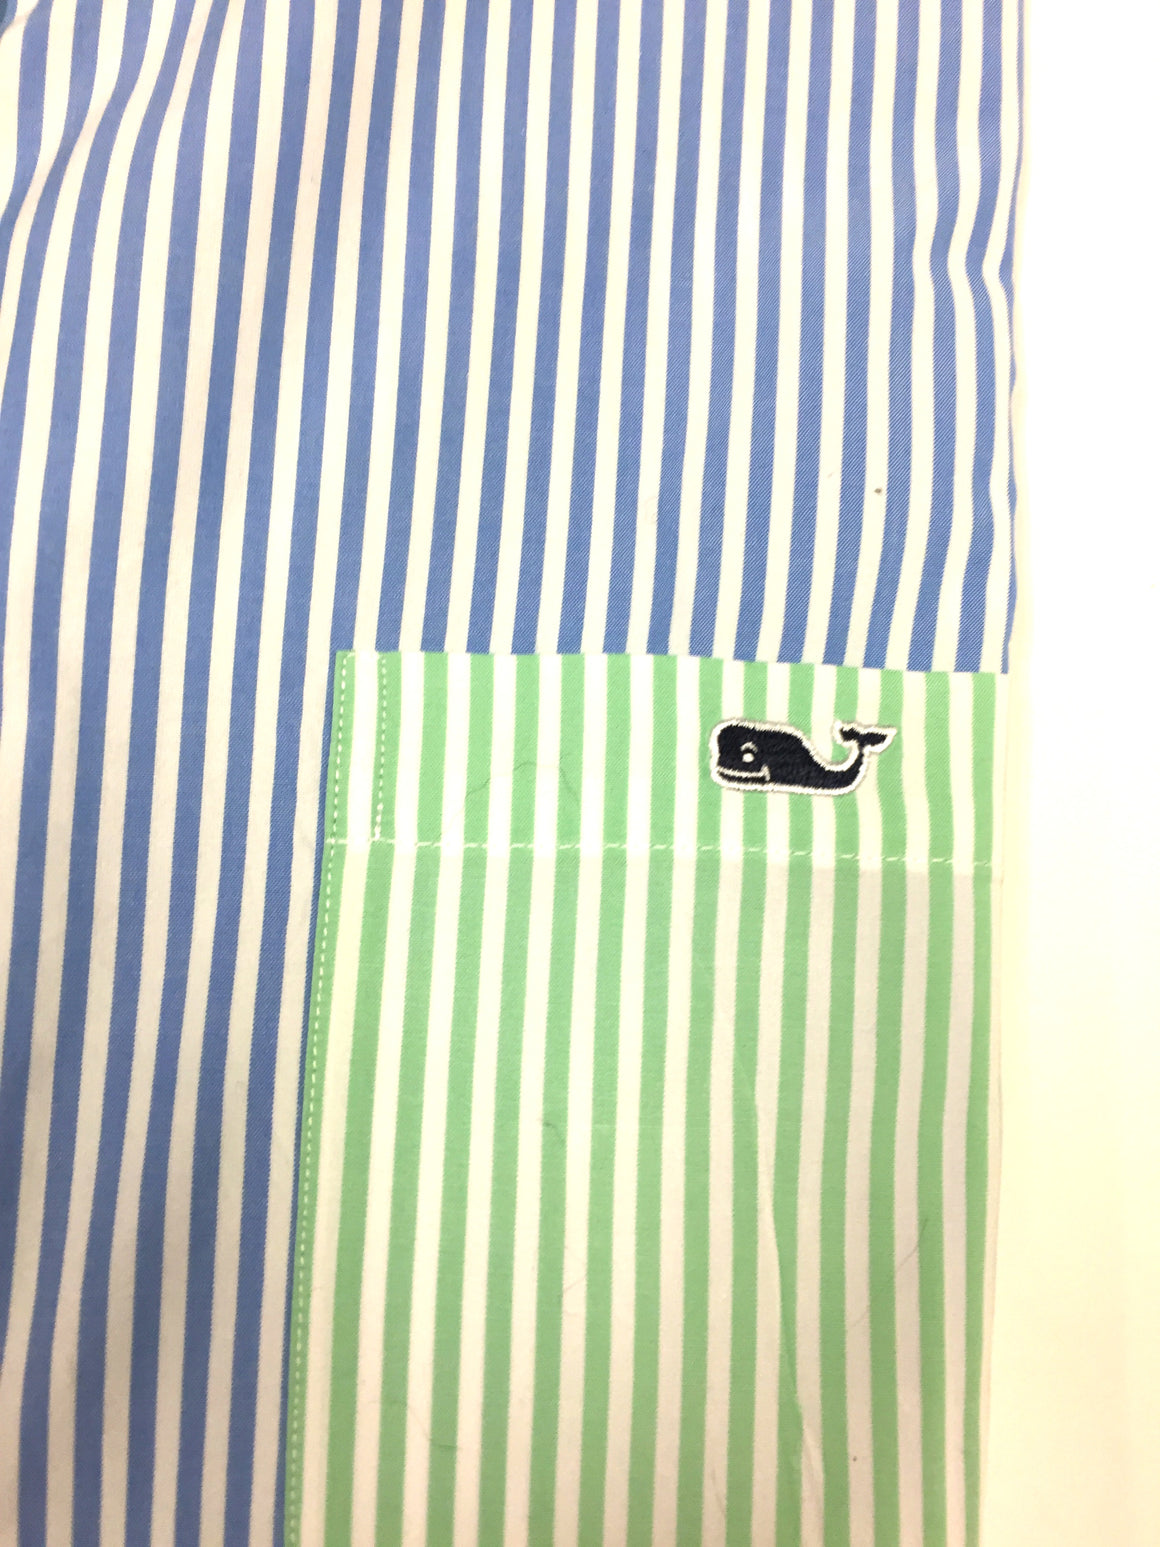 VINEYARD VINES White/Rainbow Stripe100% Cotton 'TUCKER' Men's Shirt SzXL